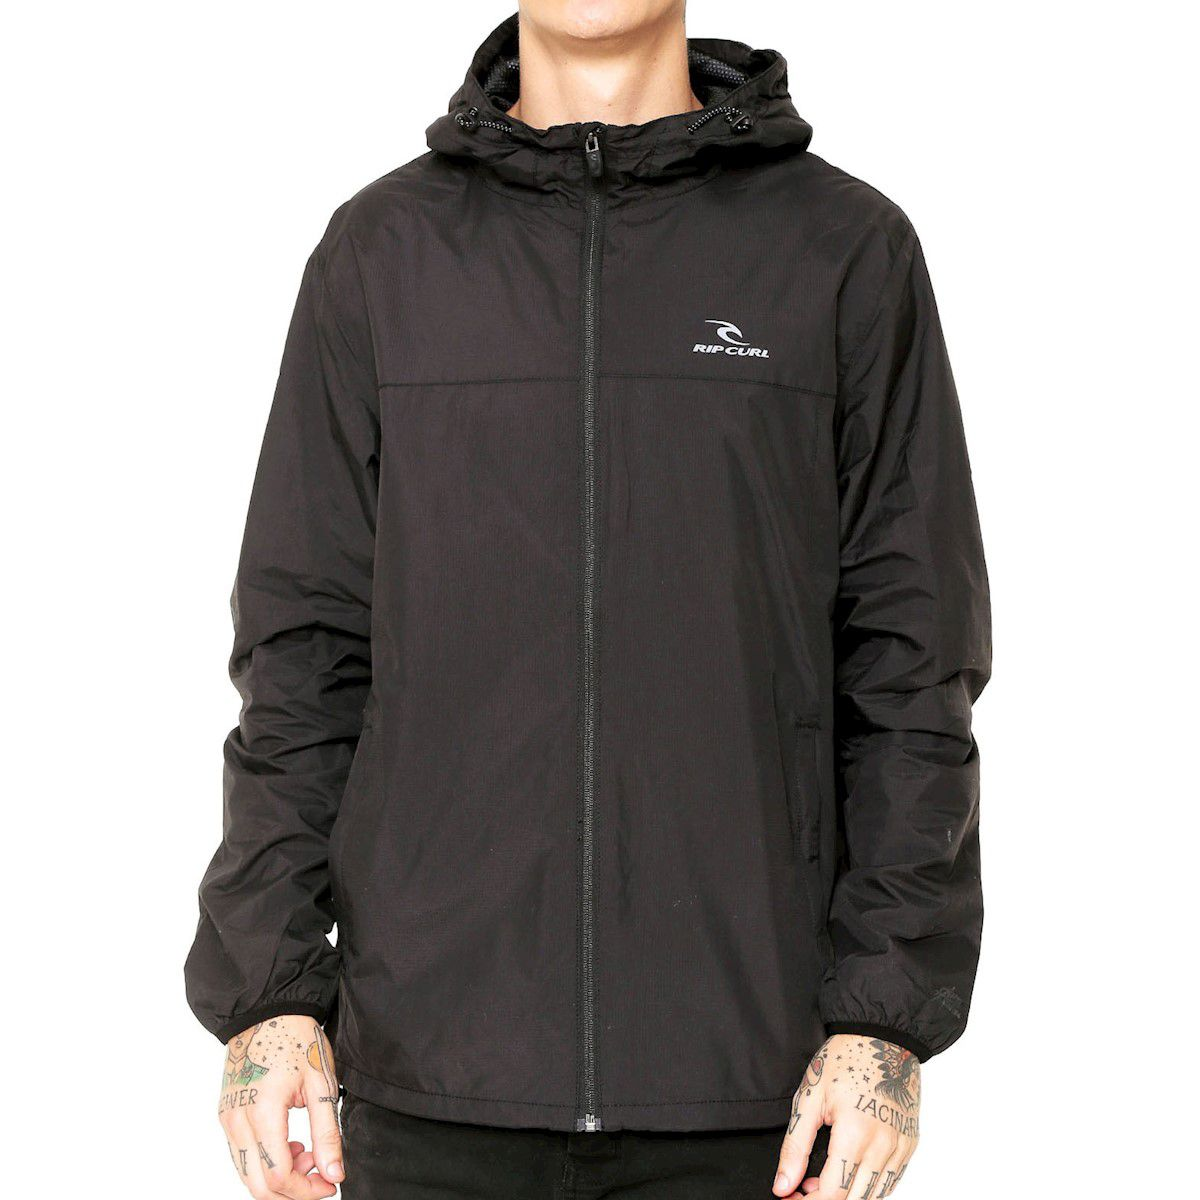 JAQUETA CORTA VENTO RIP CURL ANTI SERIES SPRAY BLACK COM 20% OFF